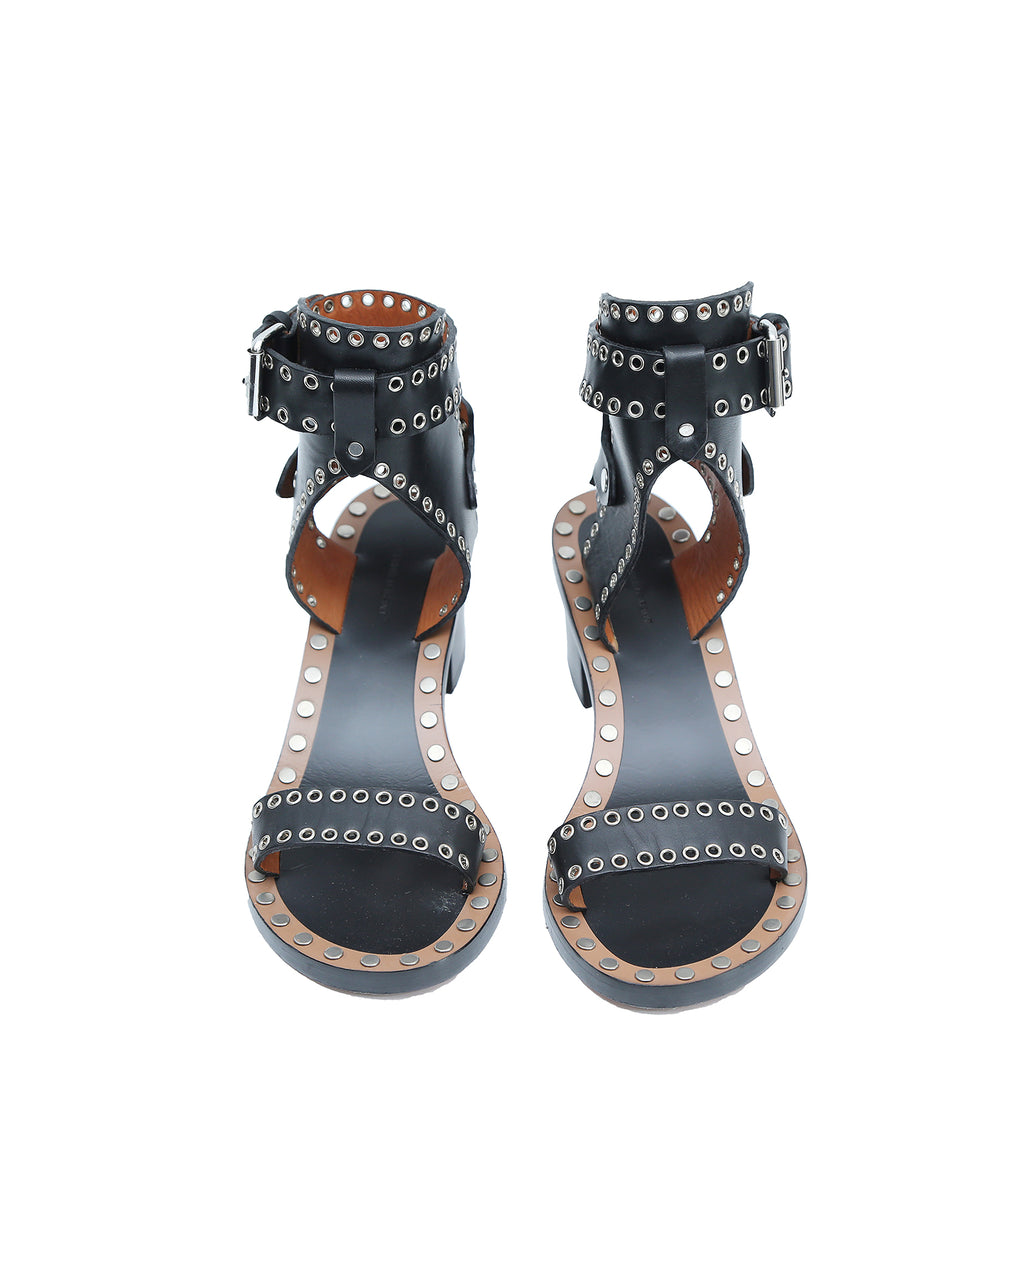 Isabel Marant Jaeryn Black Leather Studded Sandals Size 38 (EU)